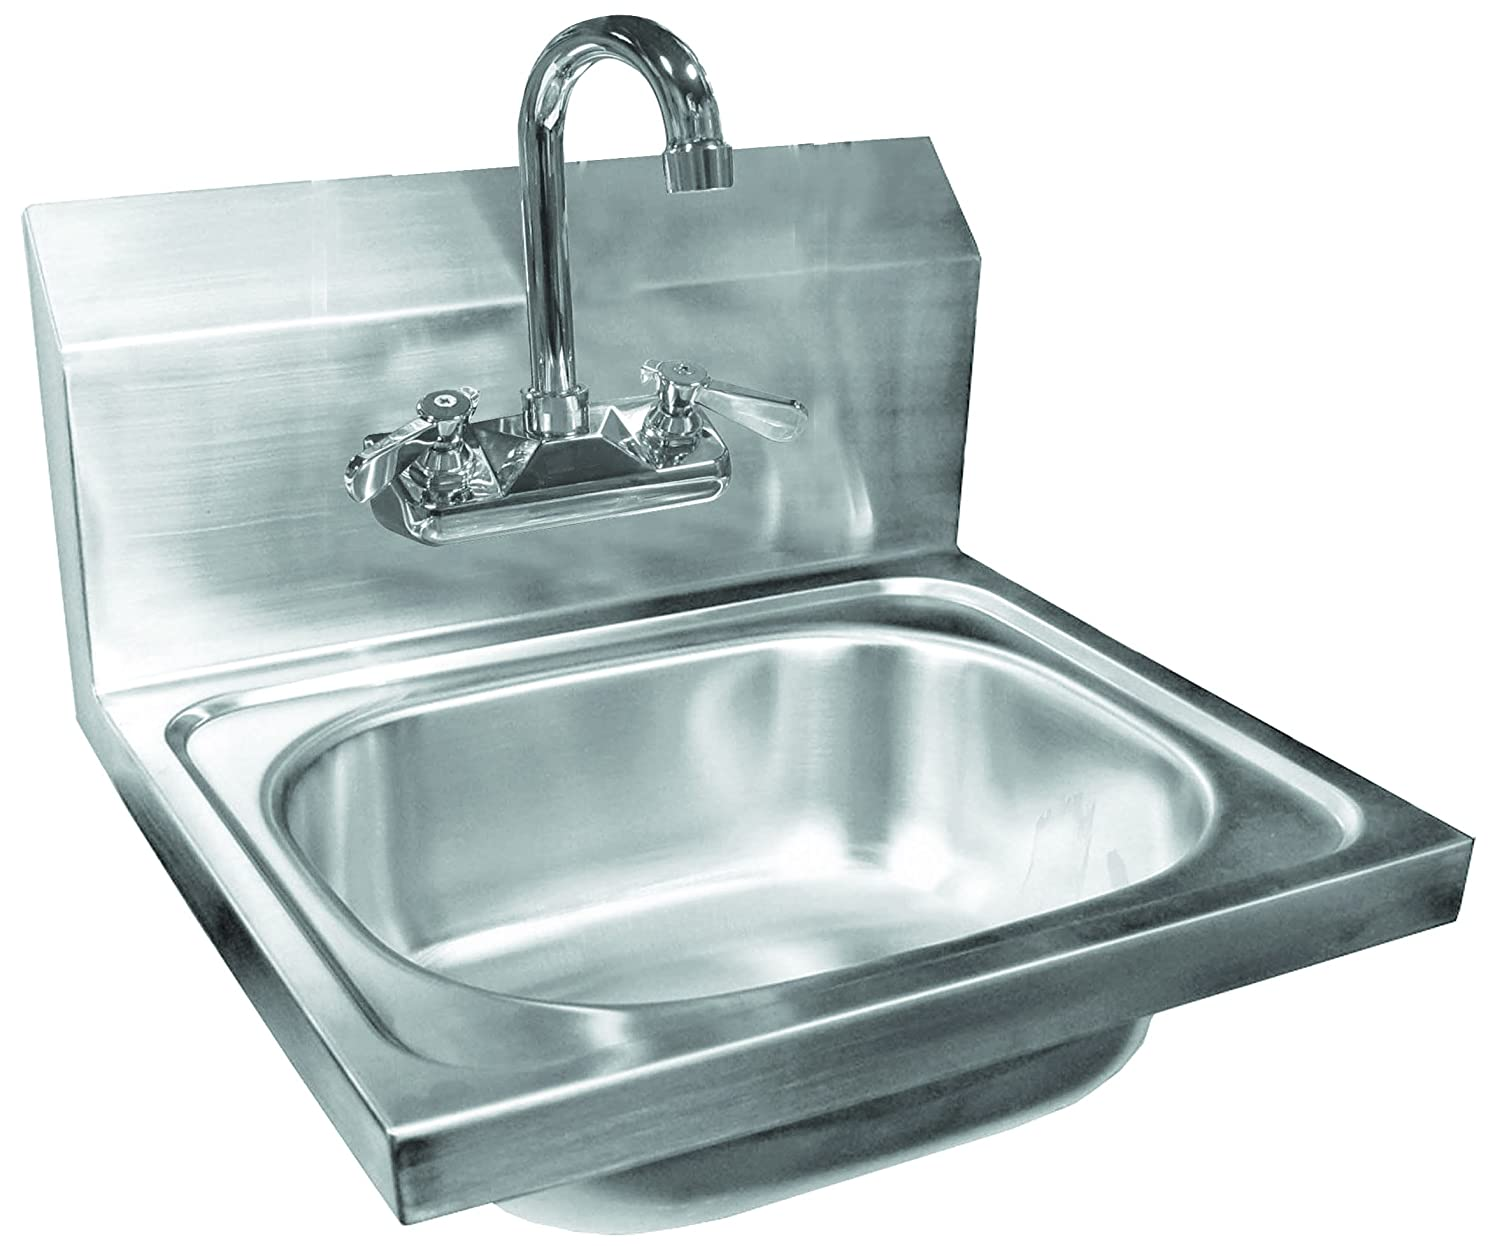 Amazon.com: ACE HS-1217WG Space Saver Wall Mount Hand Sink with Lead ...